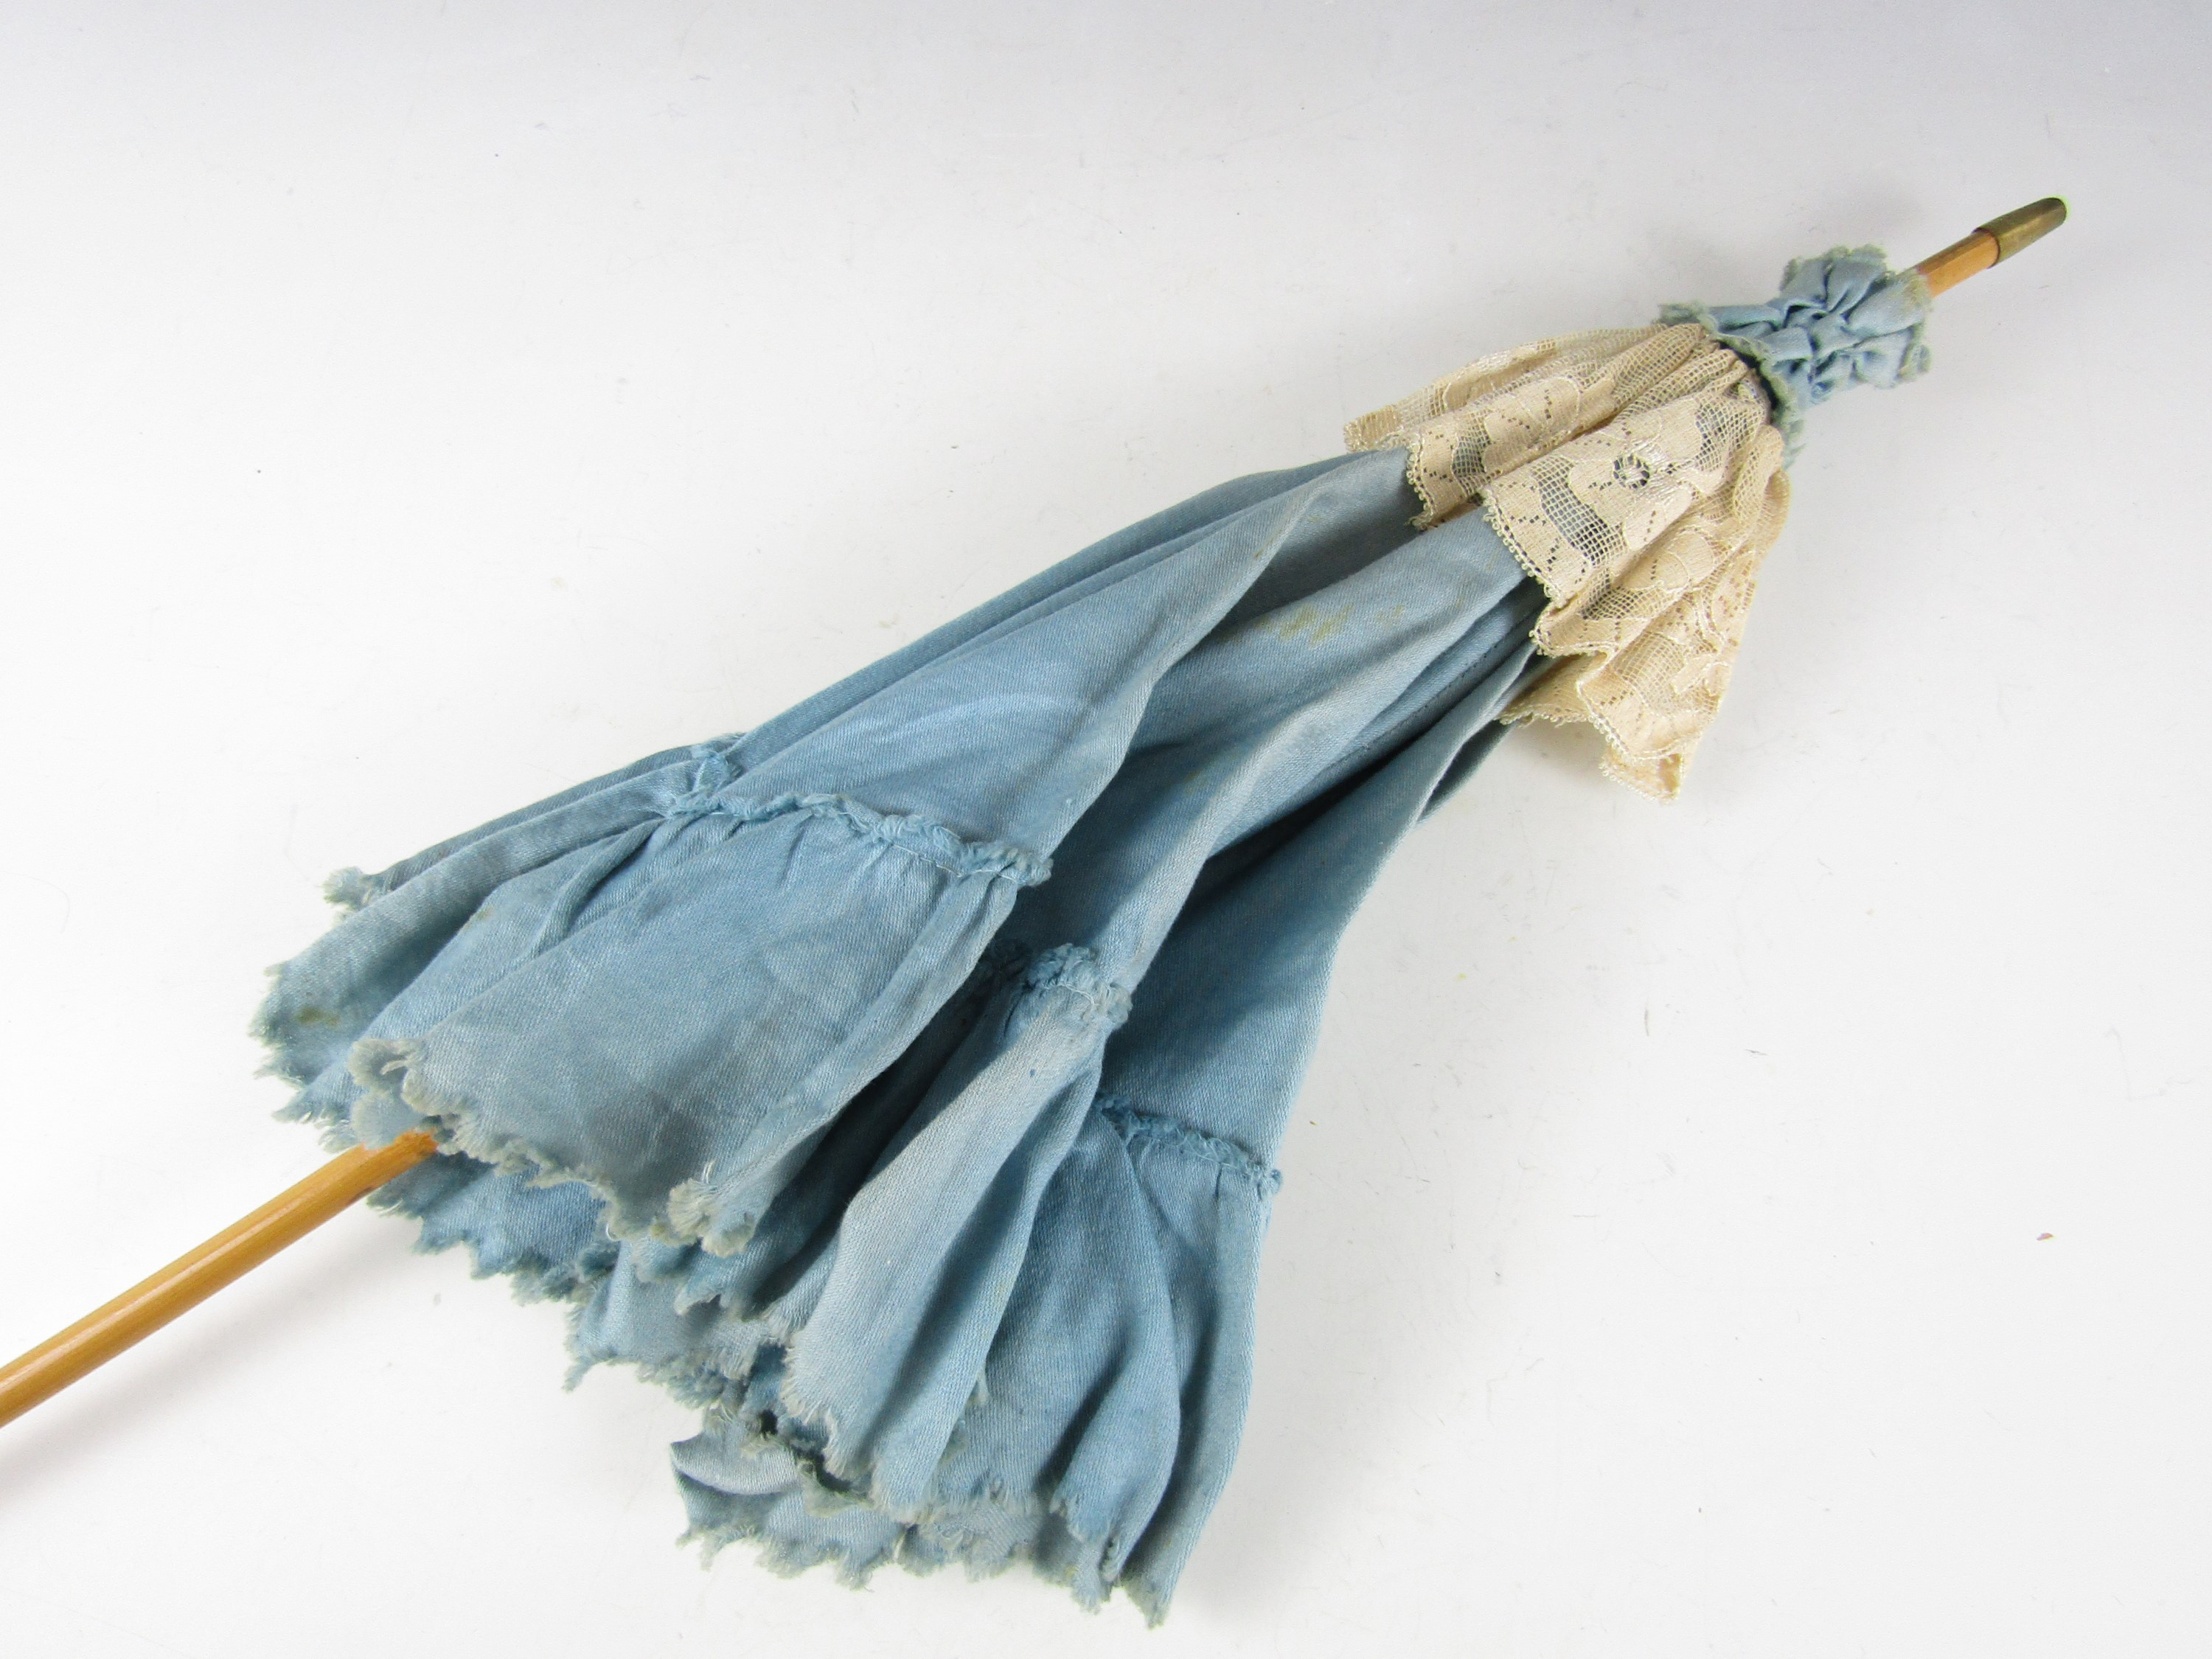 Lot 42 - A late 19th / early 20th Century lady's sun parasol with bamboo handle, in turquoise blue cotton